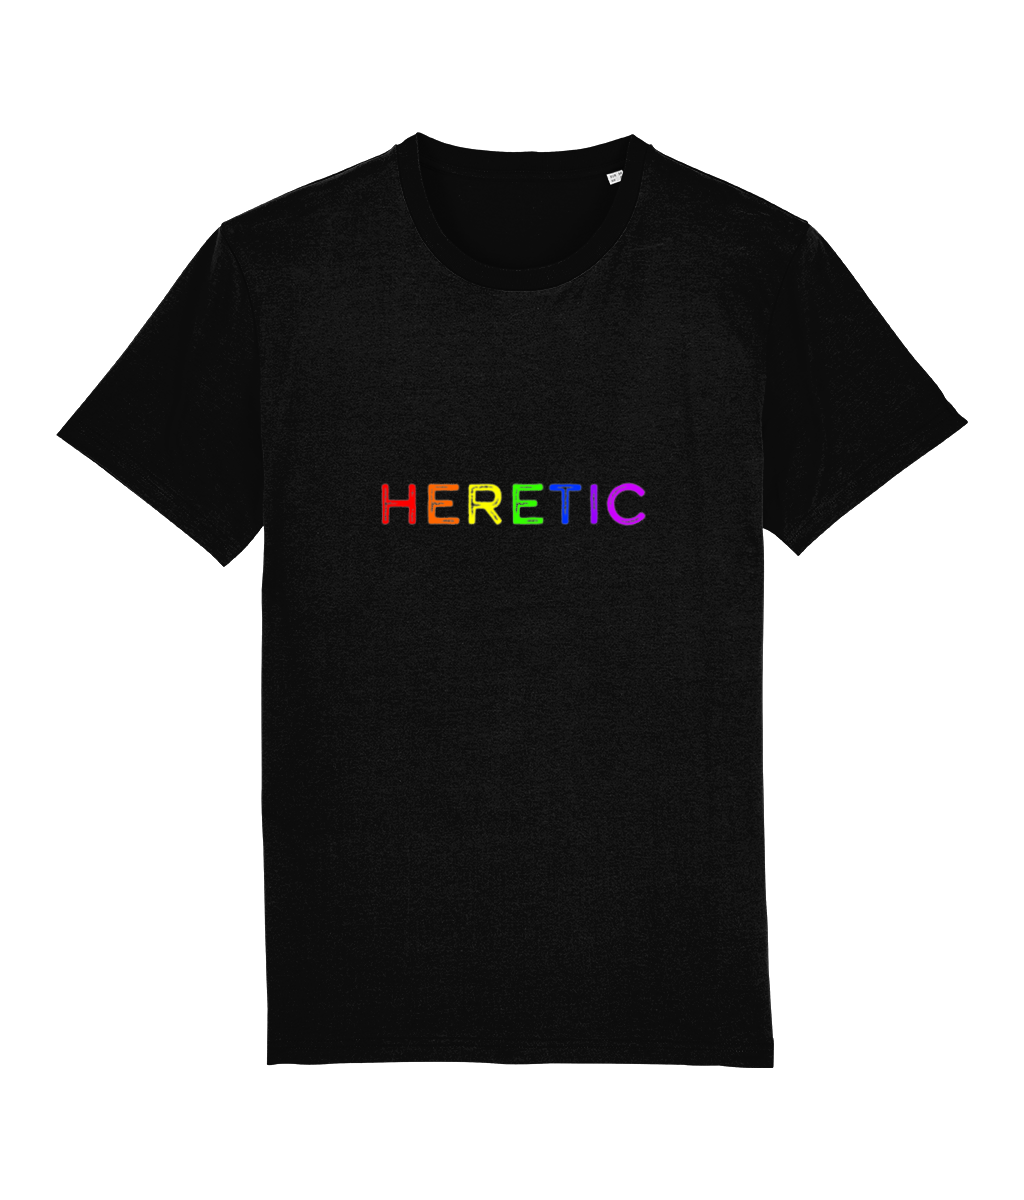 Heretic LGBTQ Pride T-Shirt